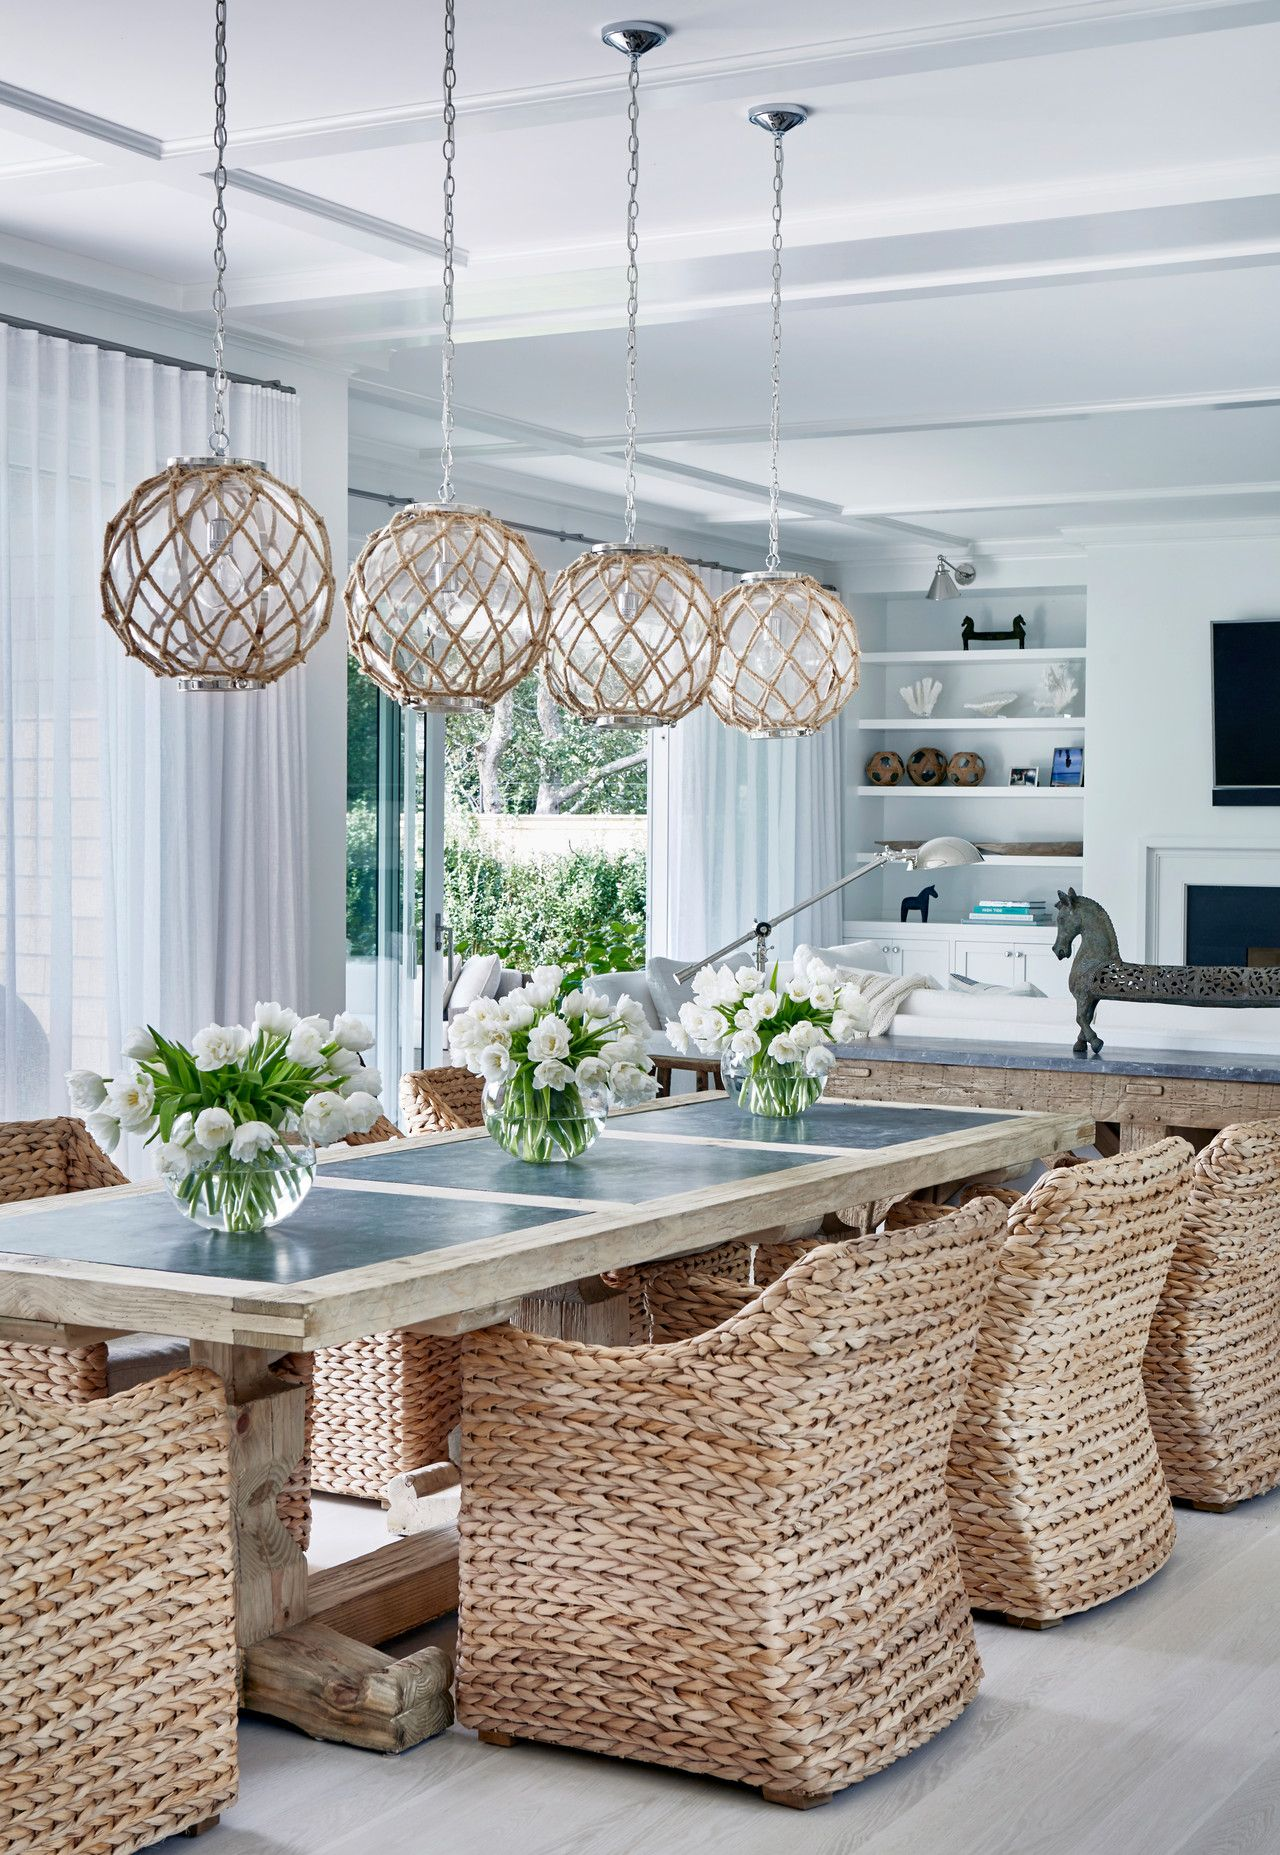 This Hamptons Beach House Is What Summer Dreams Are Made Of